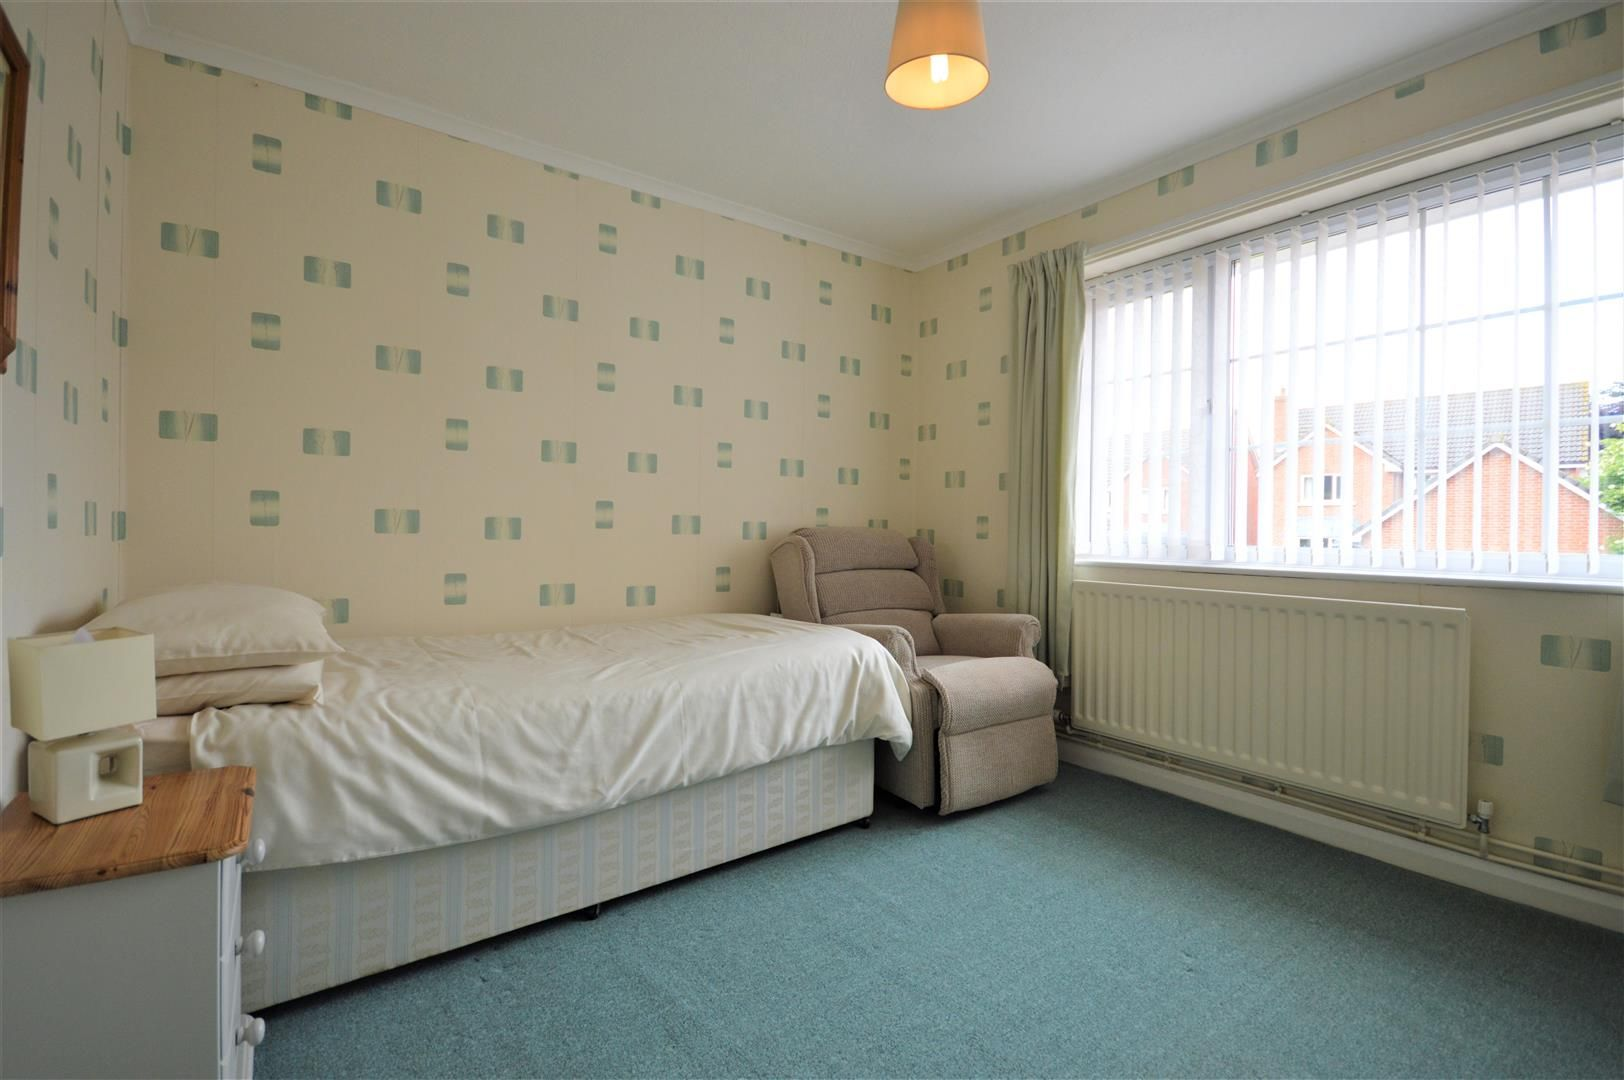 2 bed semi-detached bungalow for sale in Leominster 6